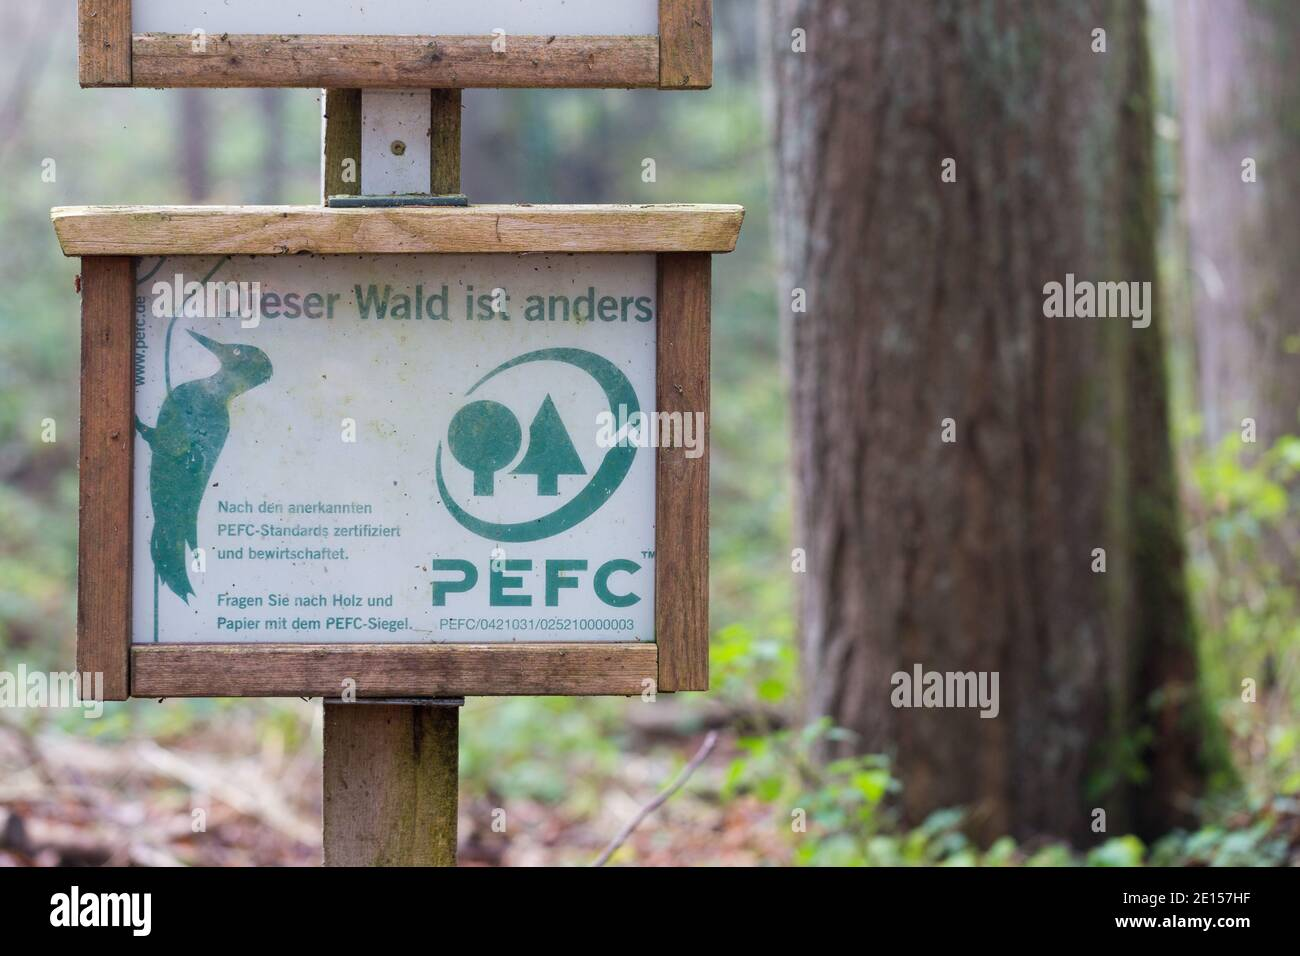 Organisations with a valid pefc chain of custody certificate can only use the pefc logo. Landsberg Germany Nov 25 2020 Pefc Sign In A Bavarian Forest Tree In The Background Pefc Certified Forests Are Managed In A Sustainable Way Stock Photo Alamy